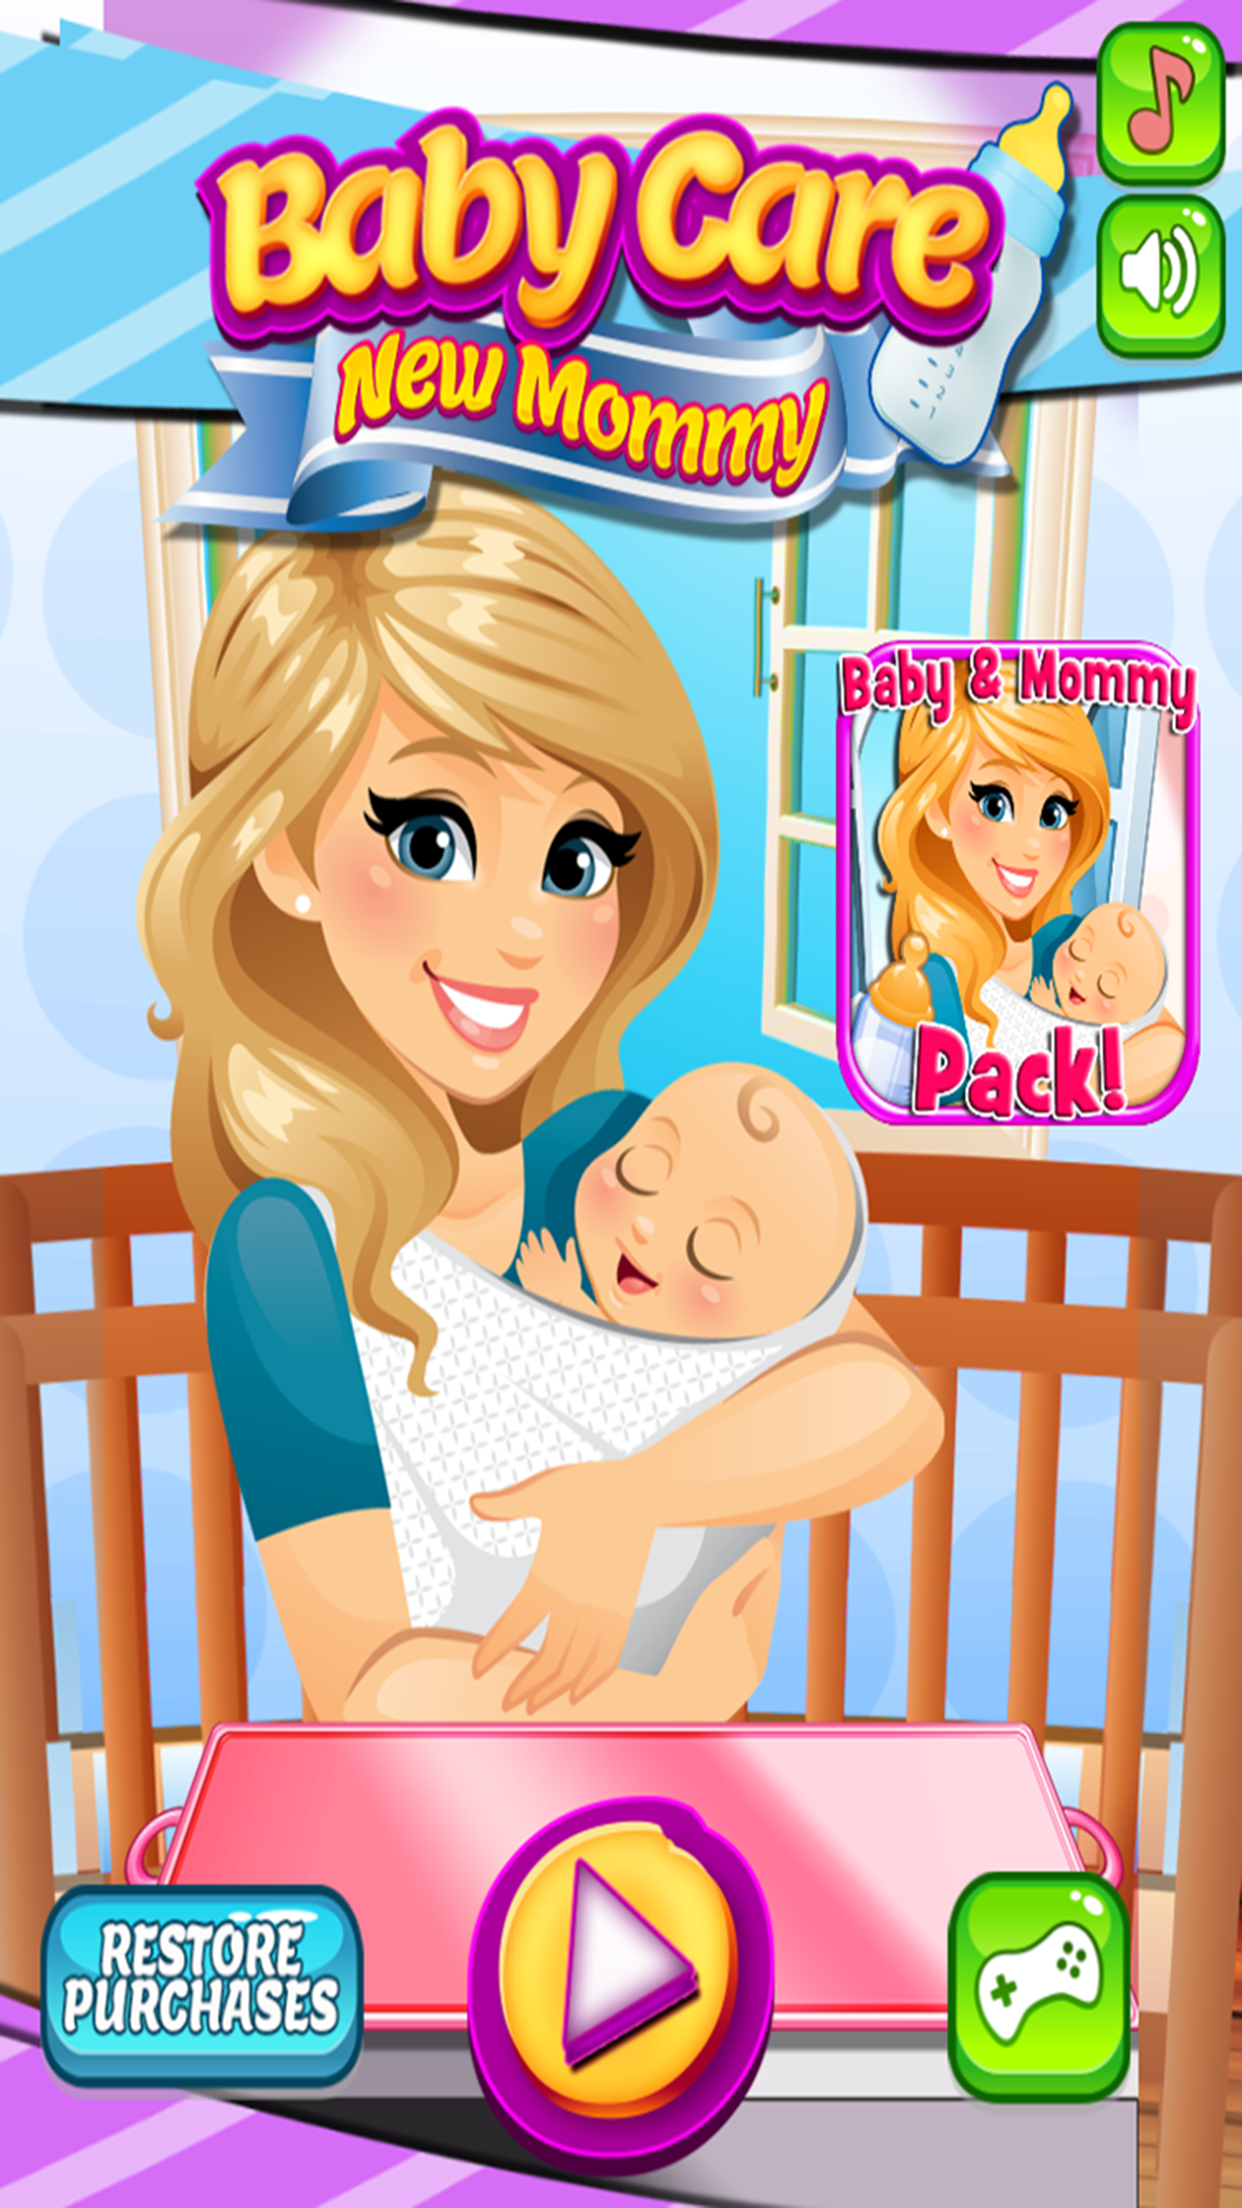 My Newborn Baby & Mommy Care:  Pregnancy Games Screenshot